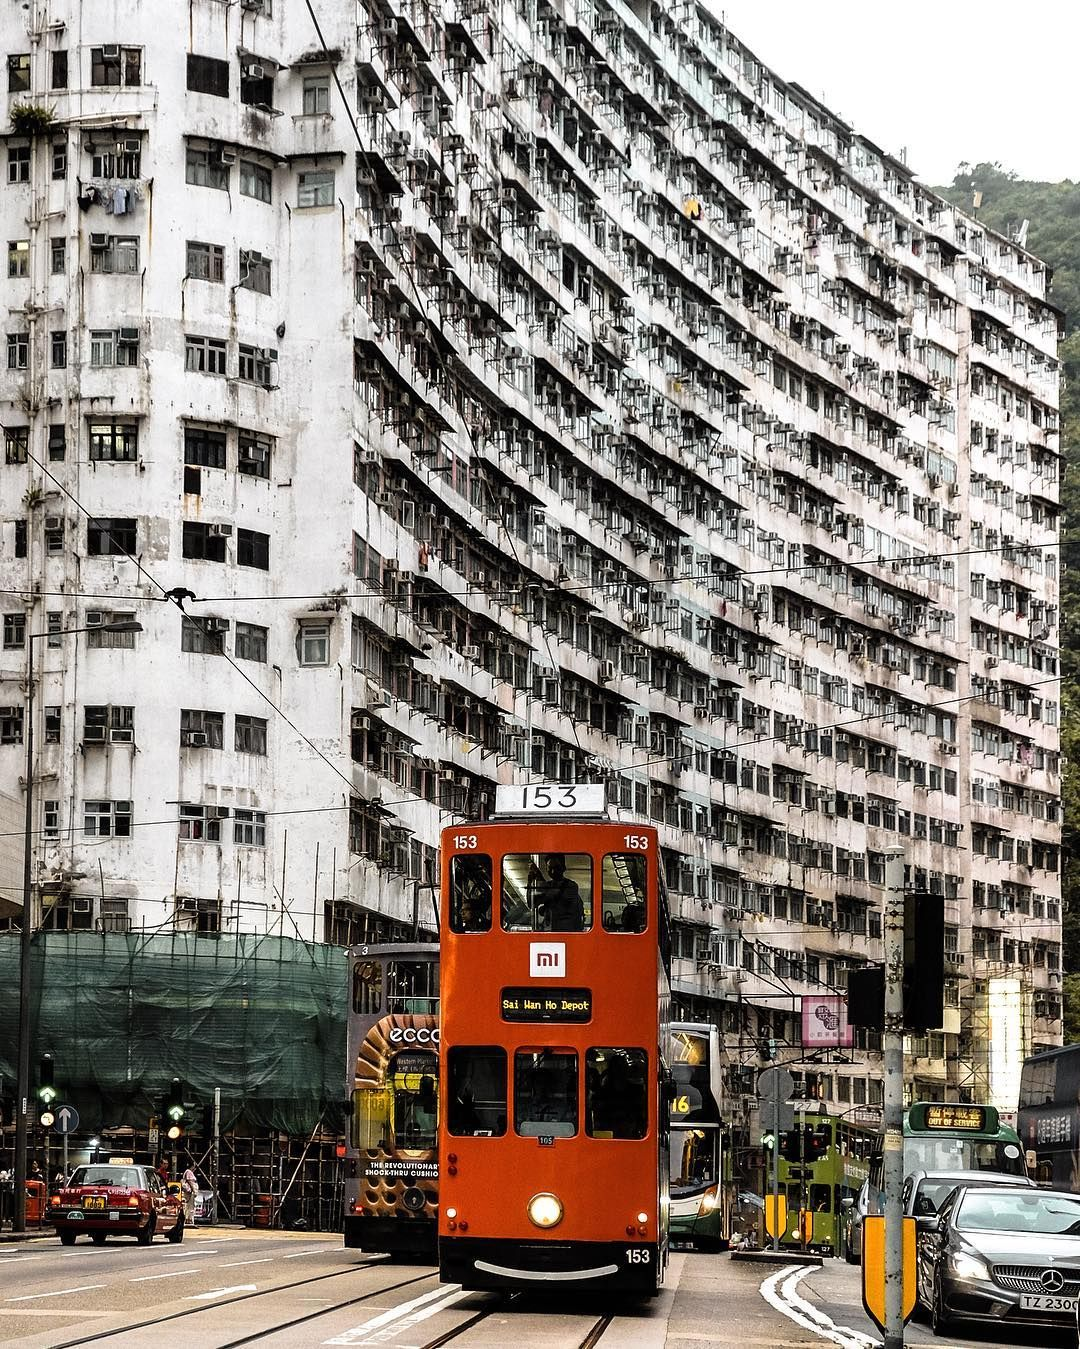 7 Things You Will Only Find In Hong Kong